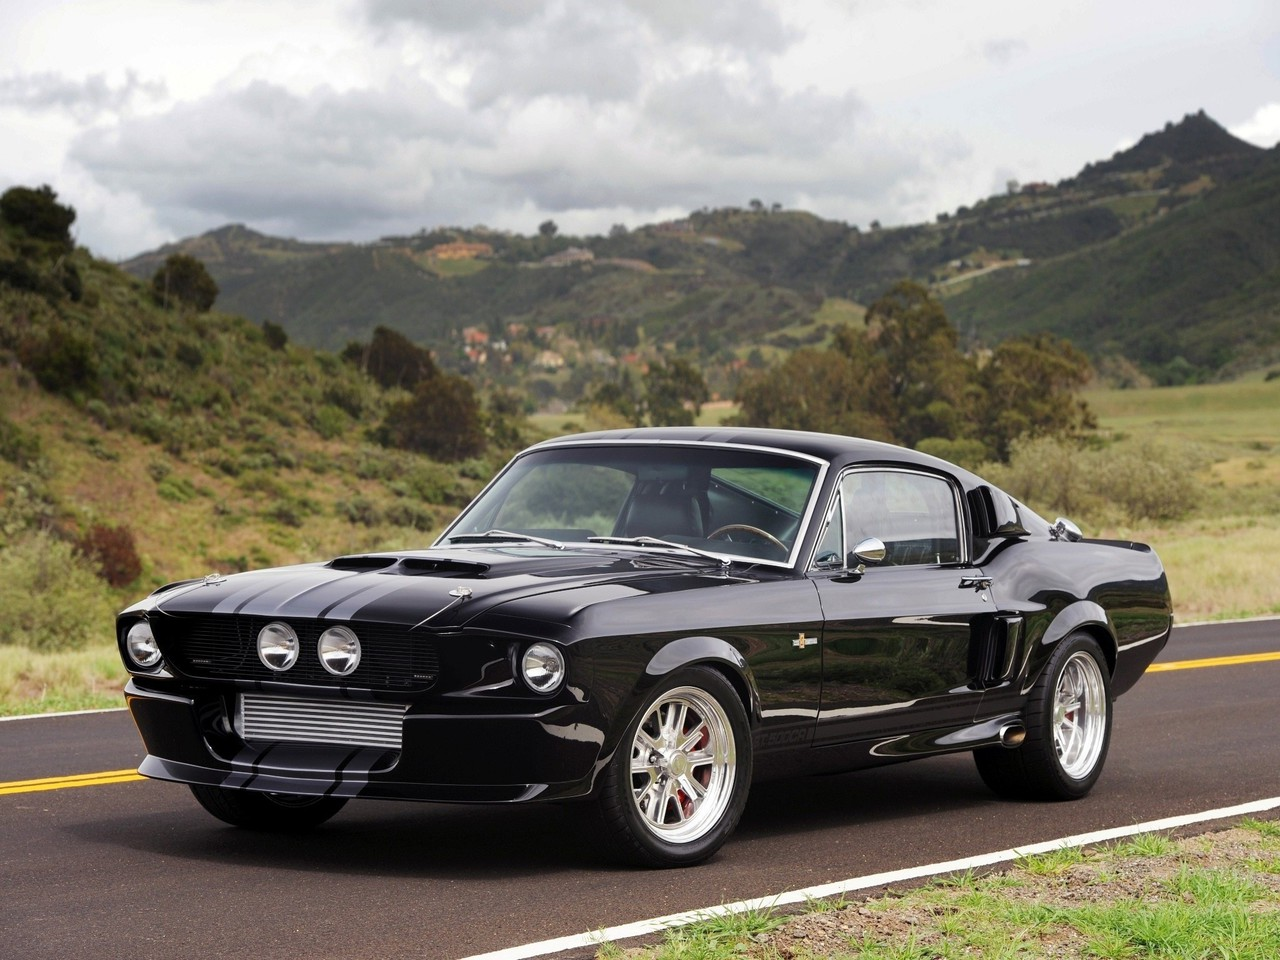 classic ford mustang shelby gt500 cars vehicles wallpaper. Black Bedroom Furniture Sets. Home Design Ideas